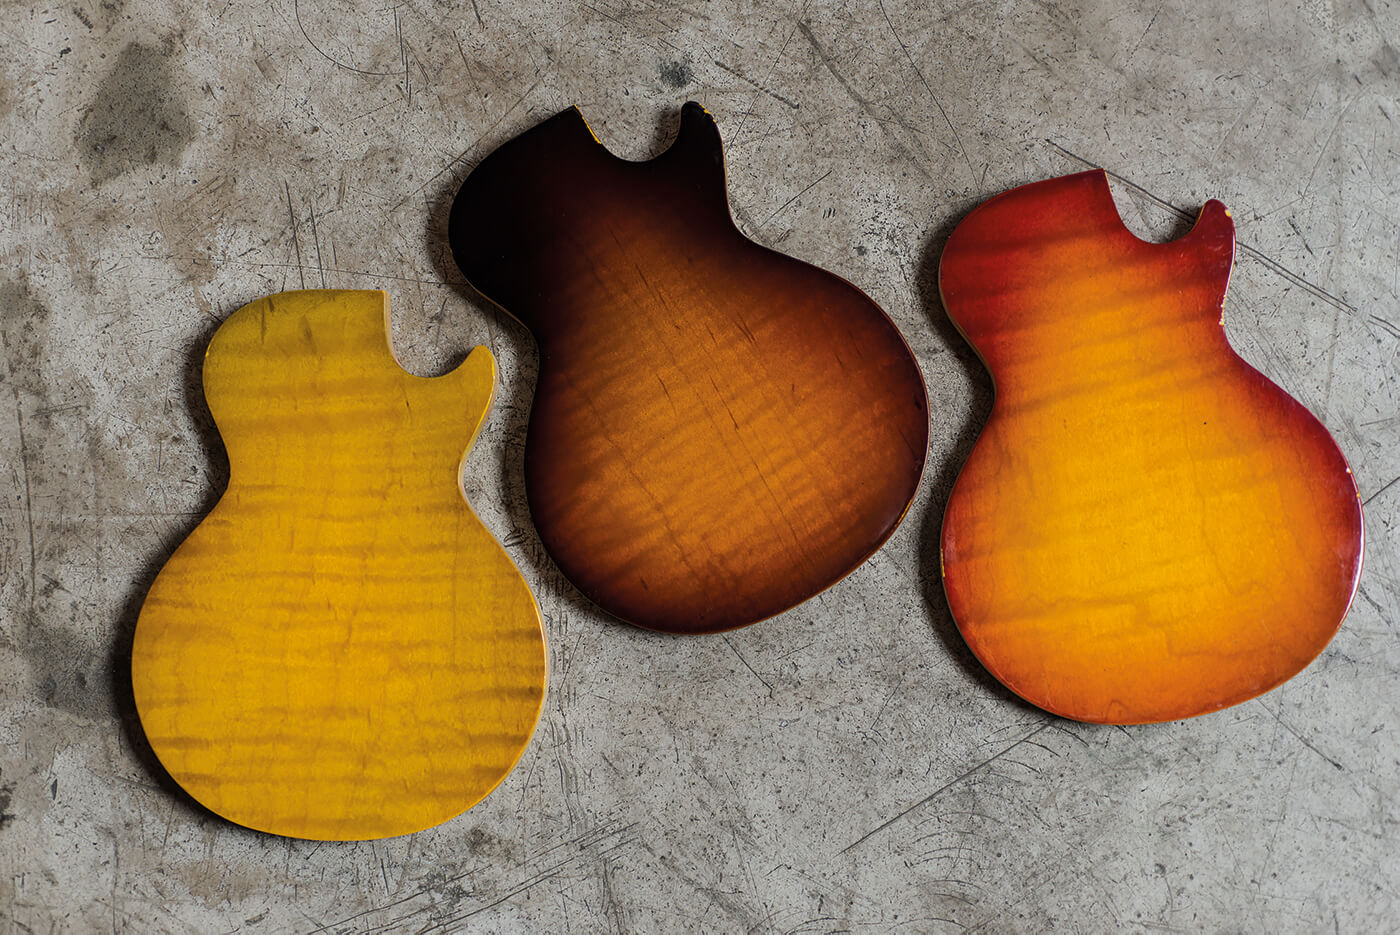 gibson made 2 measure finishes